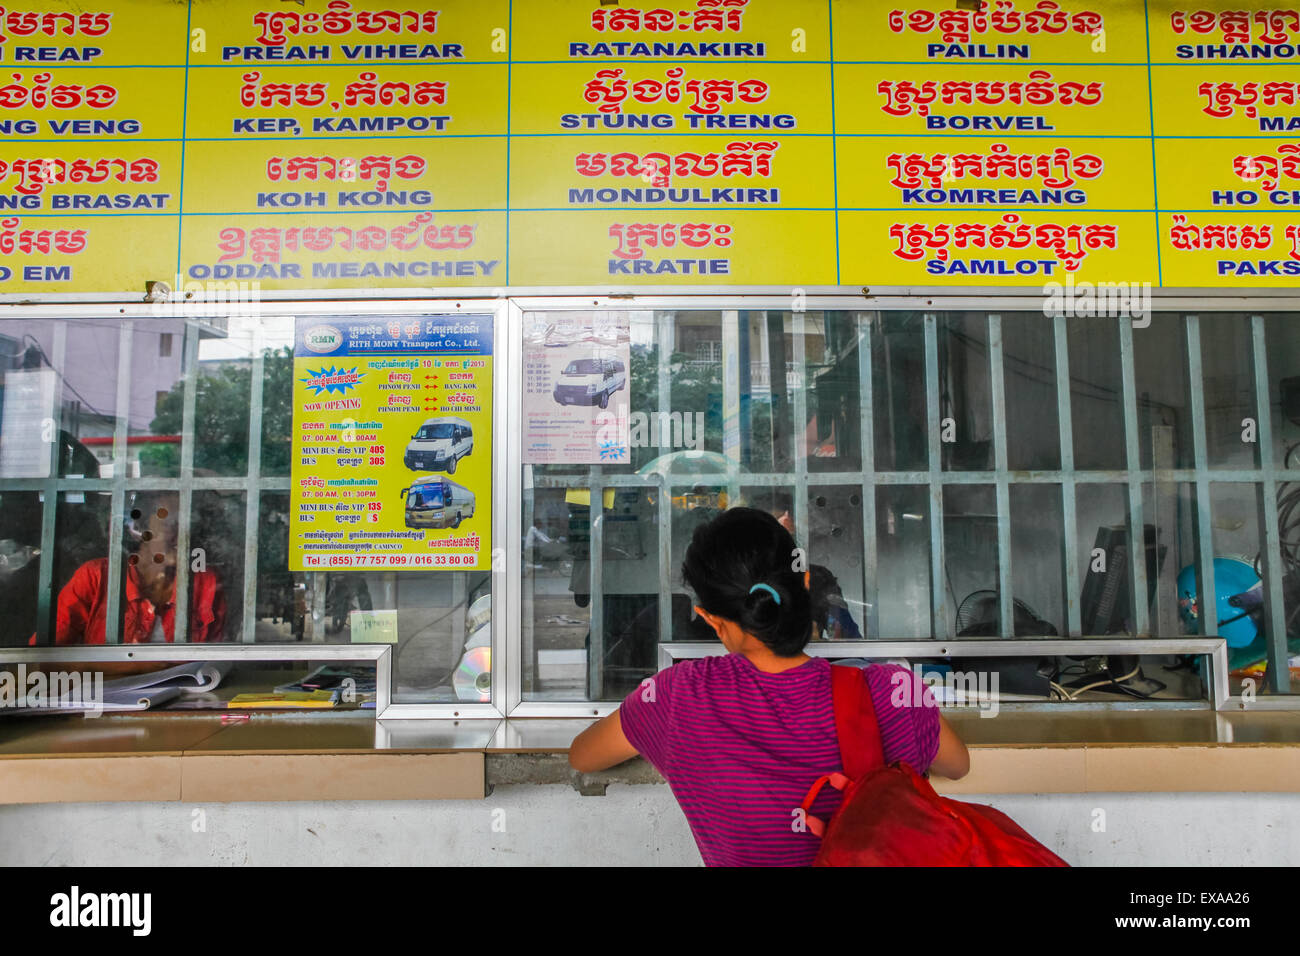 A woman buying intercity bus tickets at the Phnom Penh bus station, Cambodia. - Stock Image